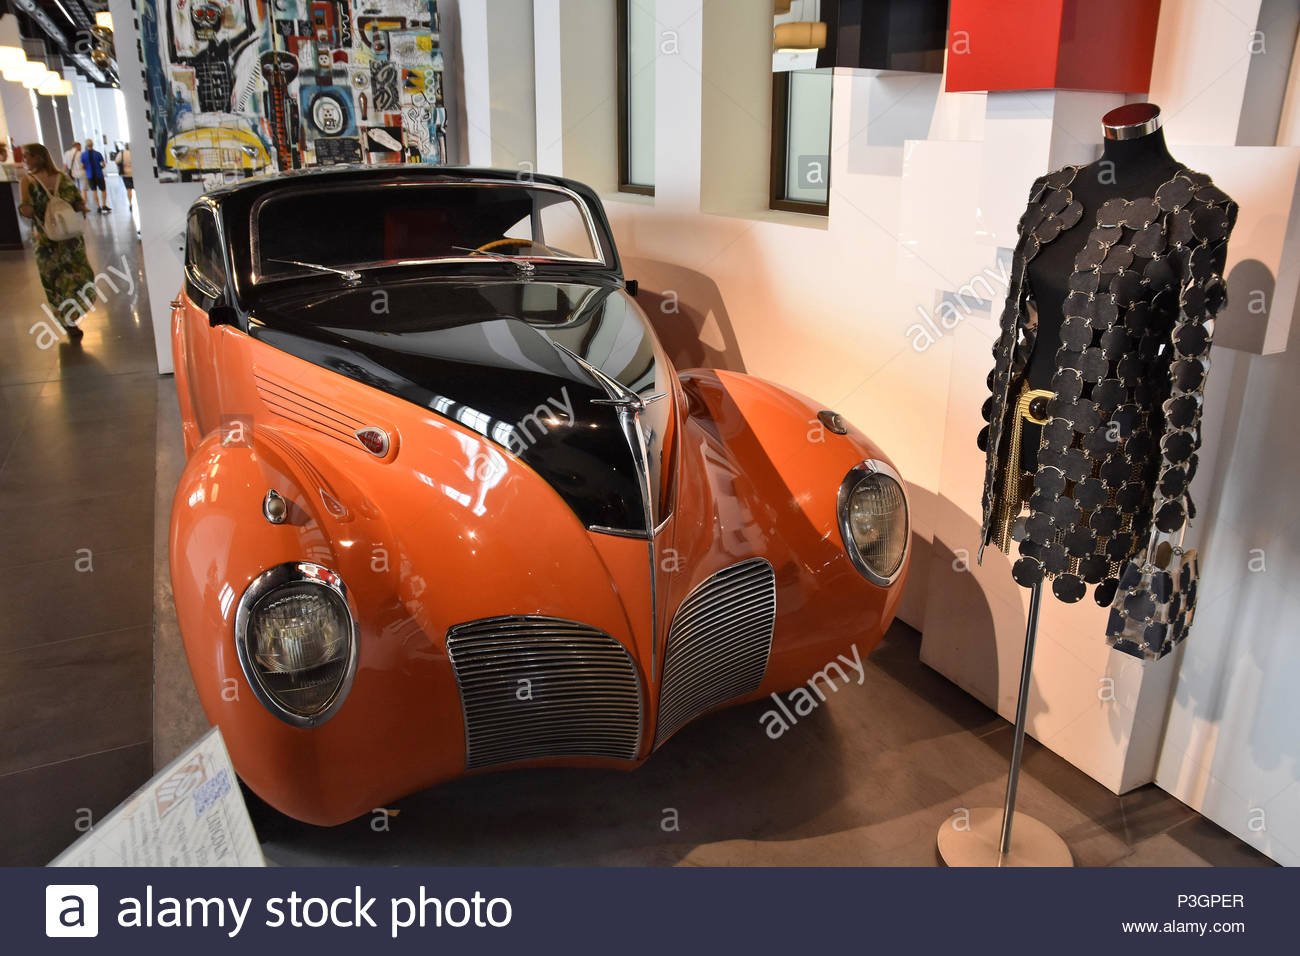 'Barracuda' - tuned car by Maga Collection Group and dress designed by Paco Rabanne displayed at Museum of Automobiles And Fashion in Malaga Spain. - Stock Image